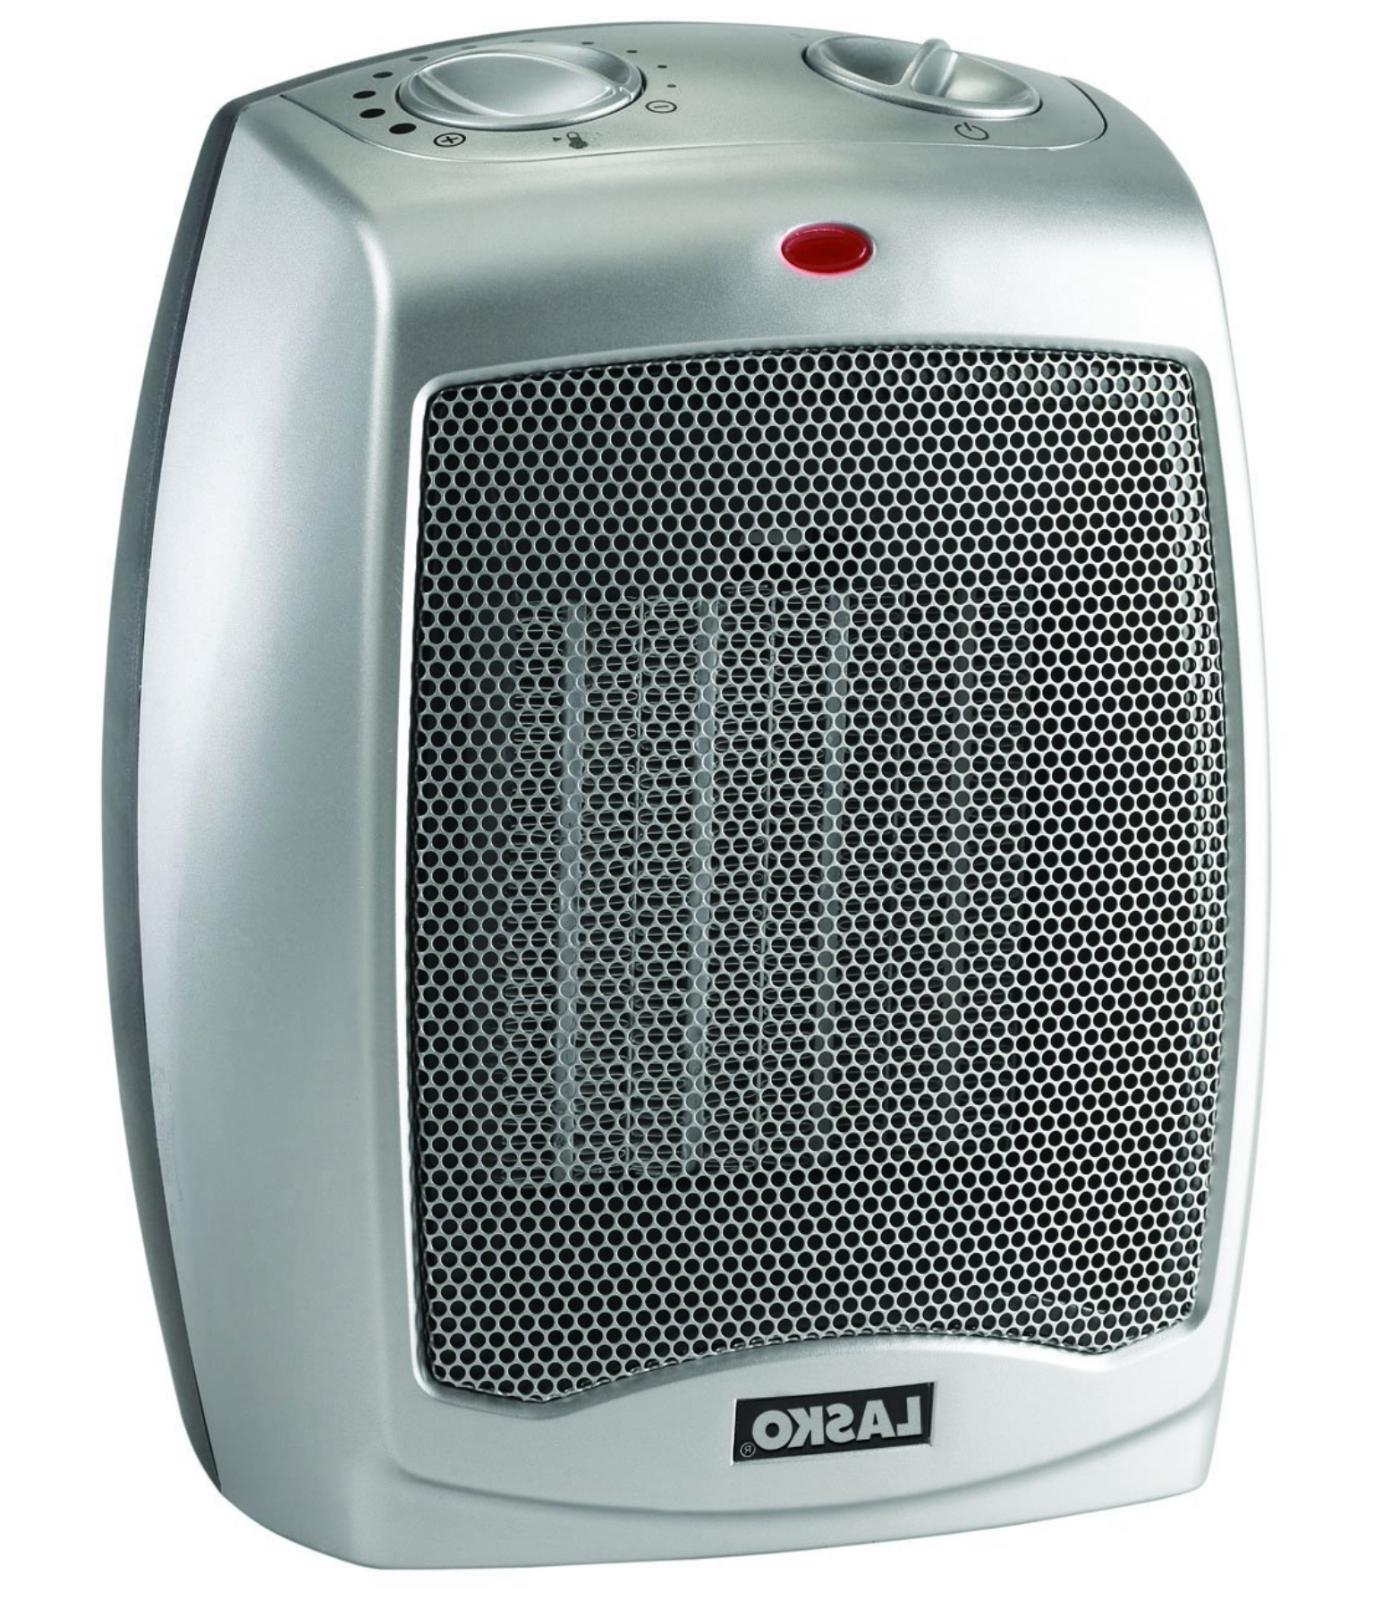 Portable & Reliable Ceramic Heater - Perfect For the Home or